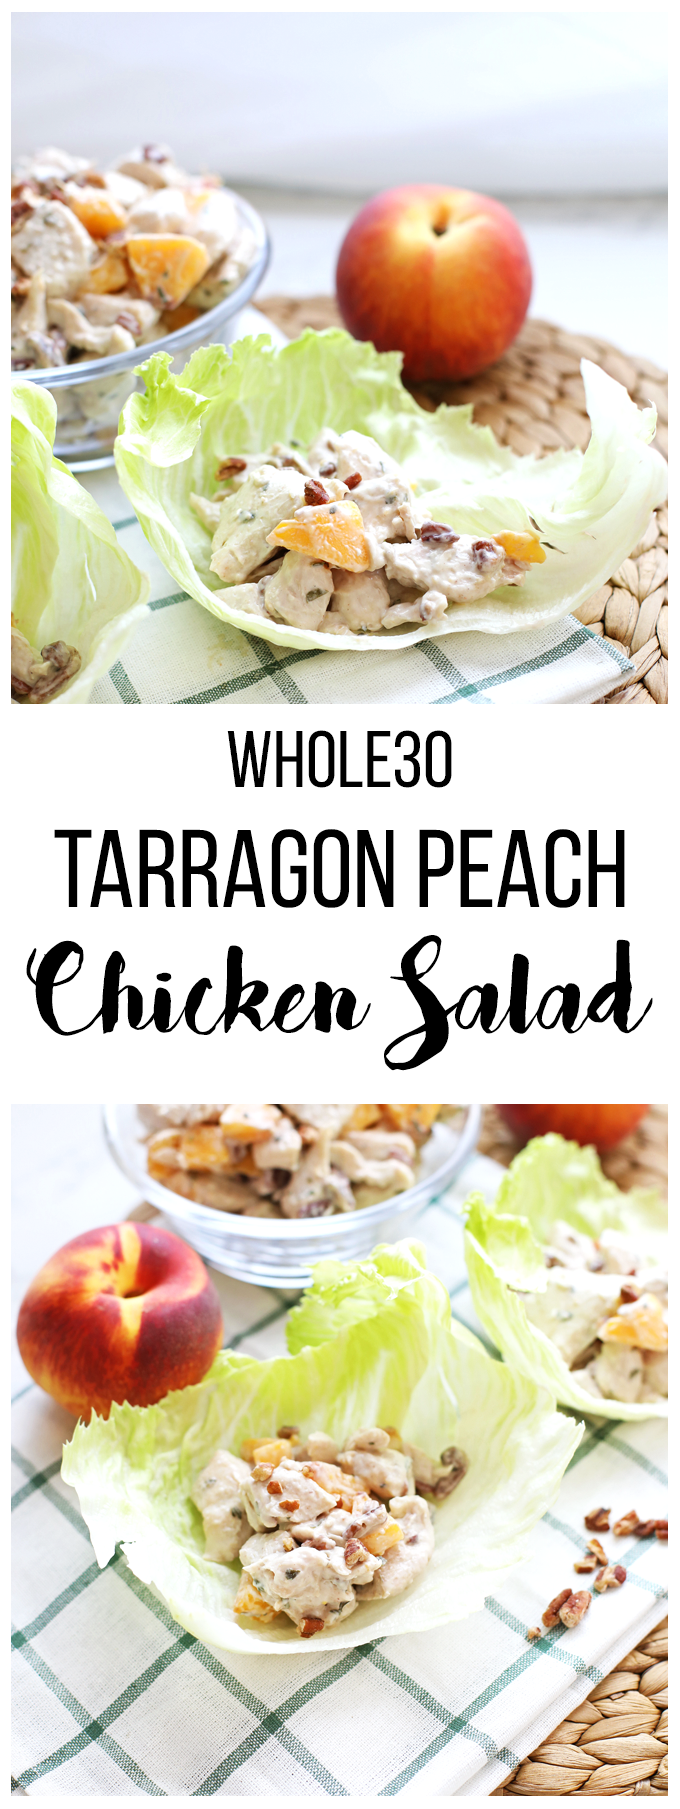 This Tarragon Peach Chicken Salad is simple to throw together and whole30 compliant! Great to meal prep on Sunday for week!